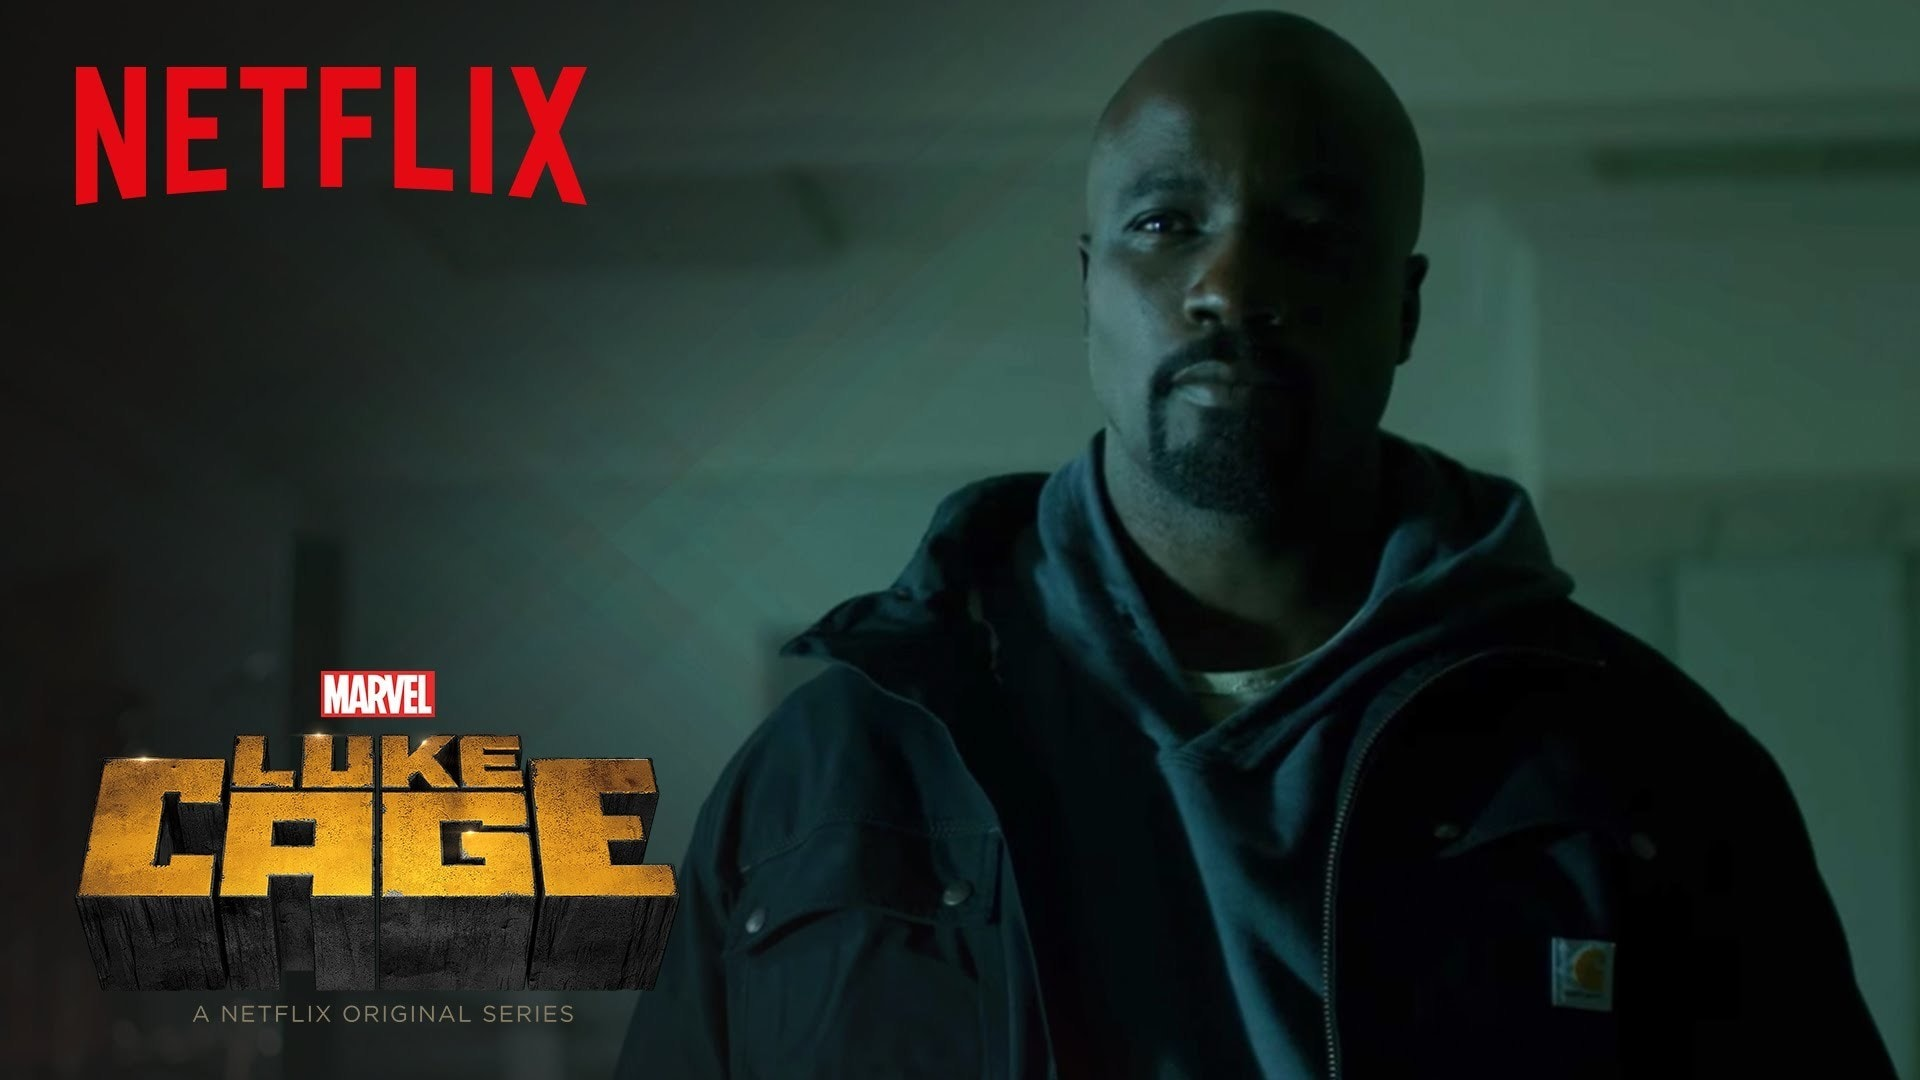 Marvel's Luke Cage on Netflix